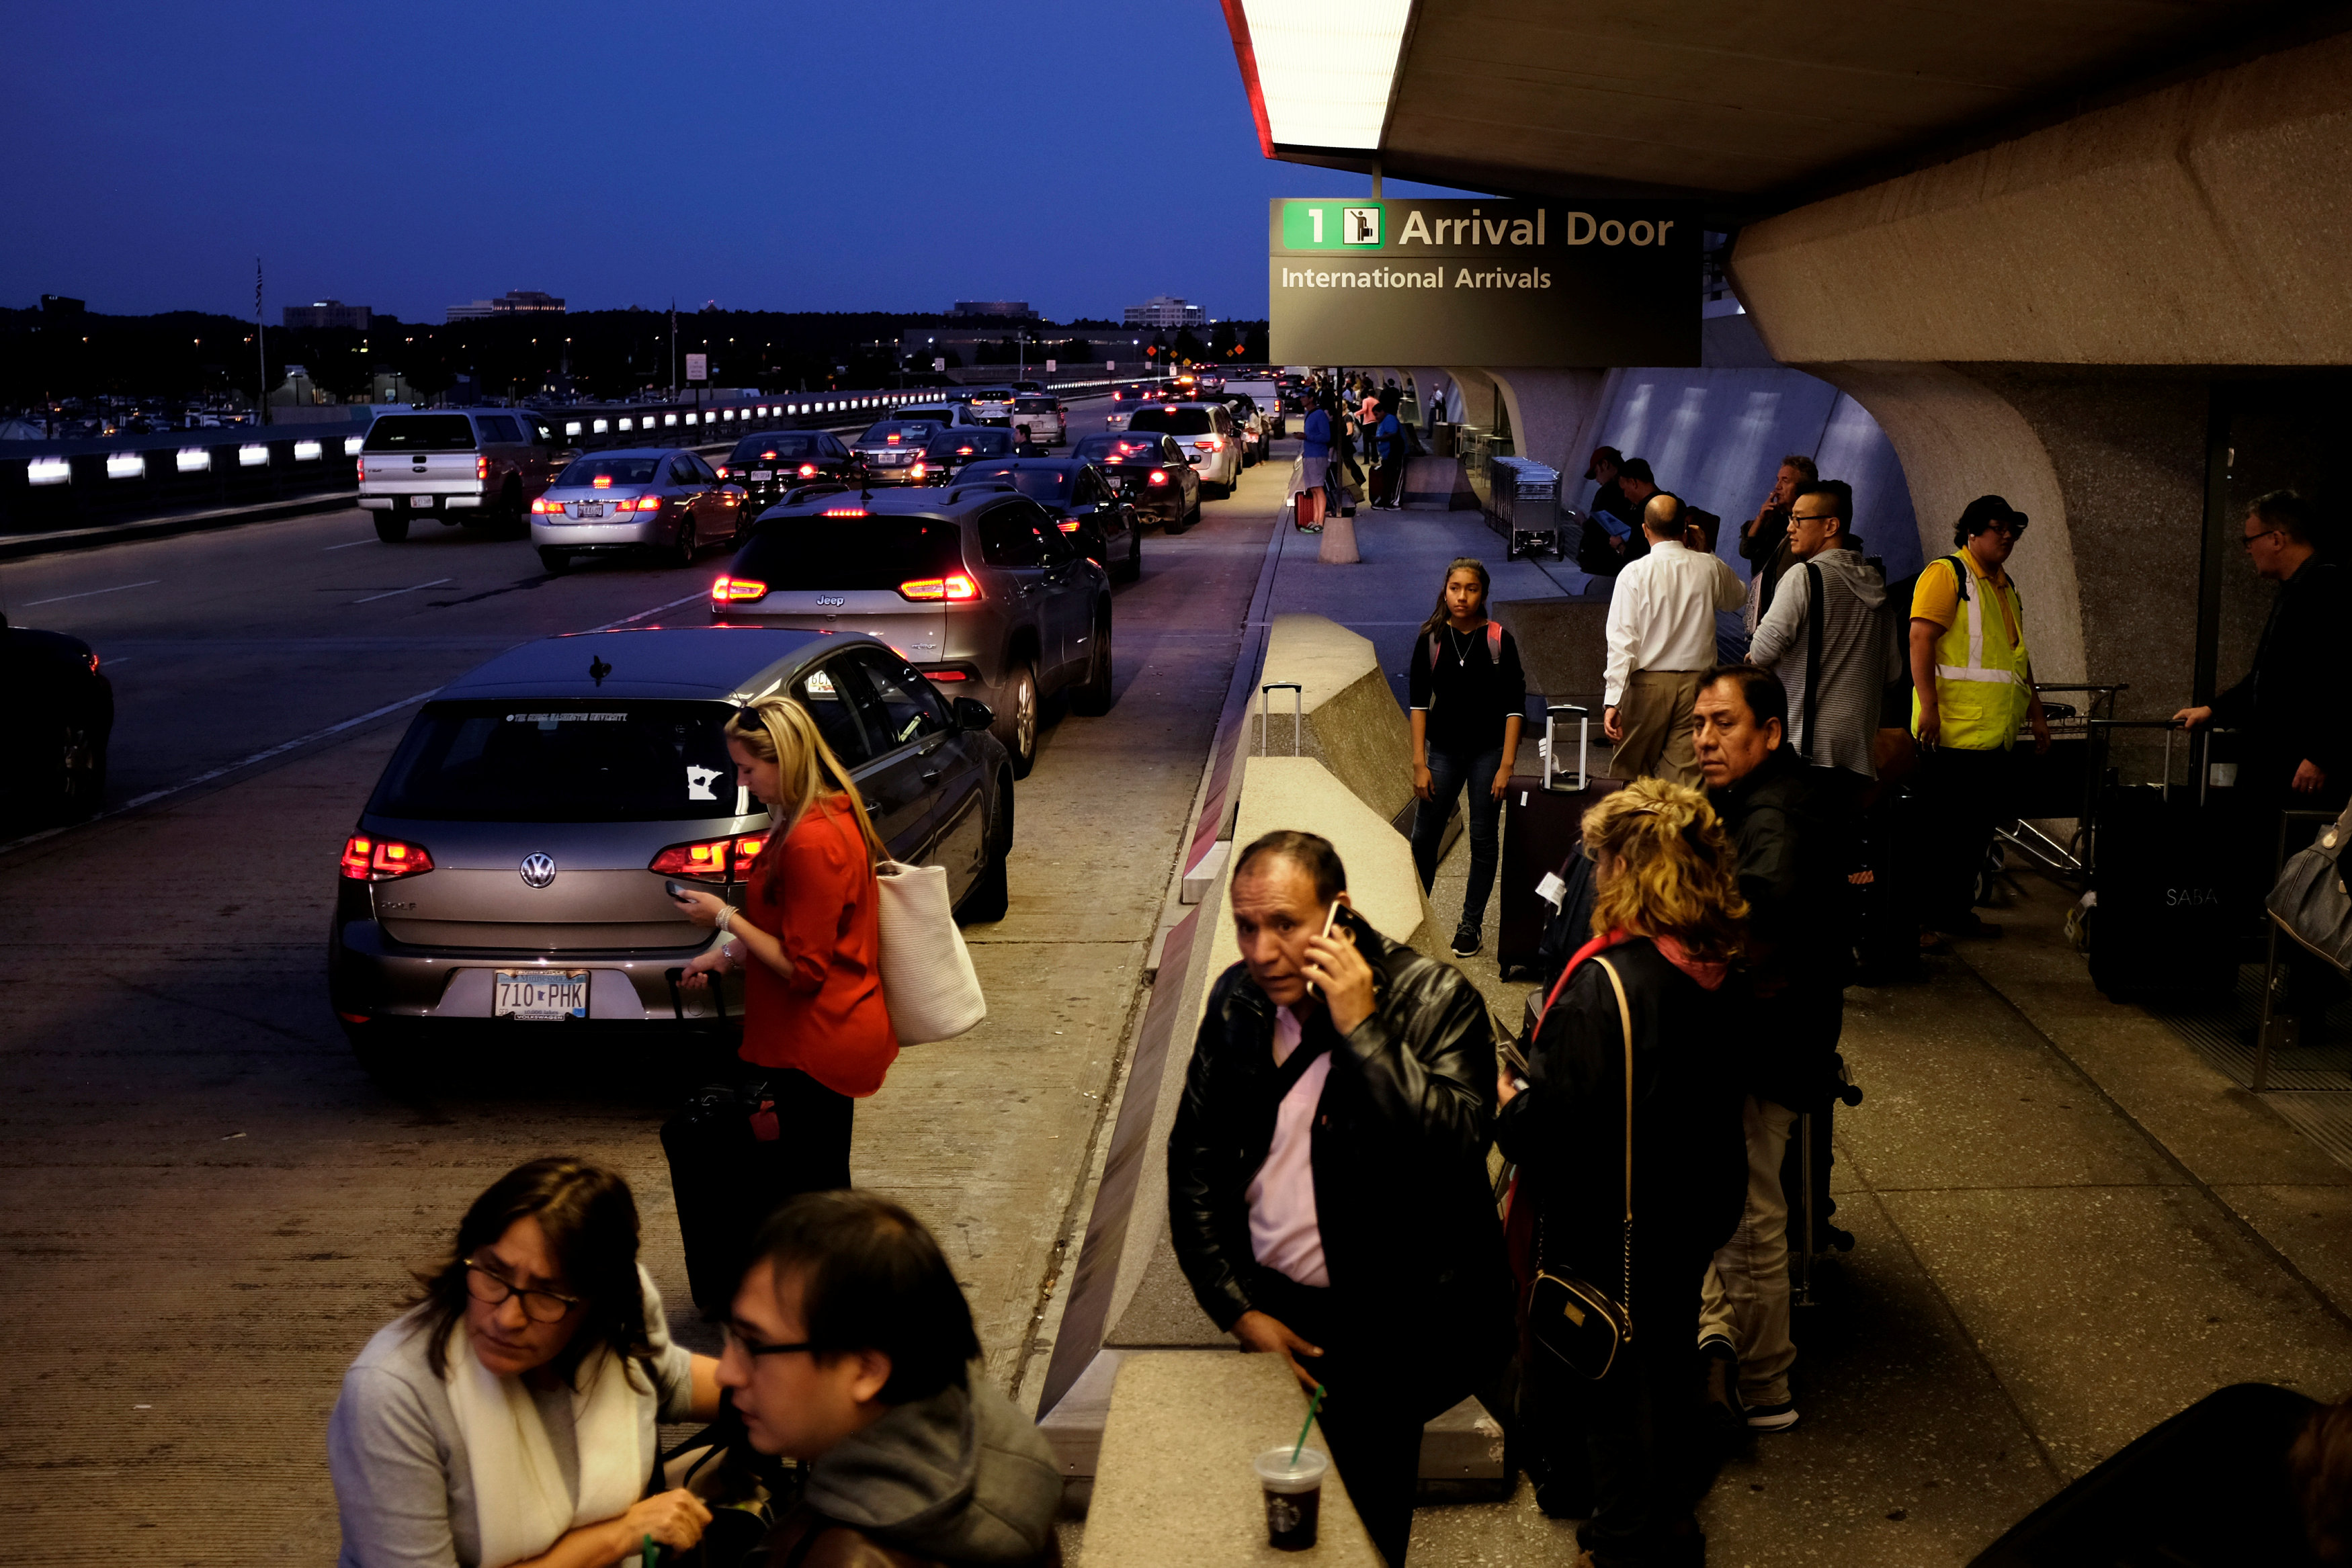 International passengers wait for their rides outside the international arrivals exit at Washington Dulles International Airport in Dulles, Virginia, U.S. September 24, 2017.